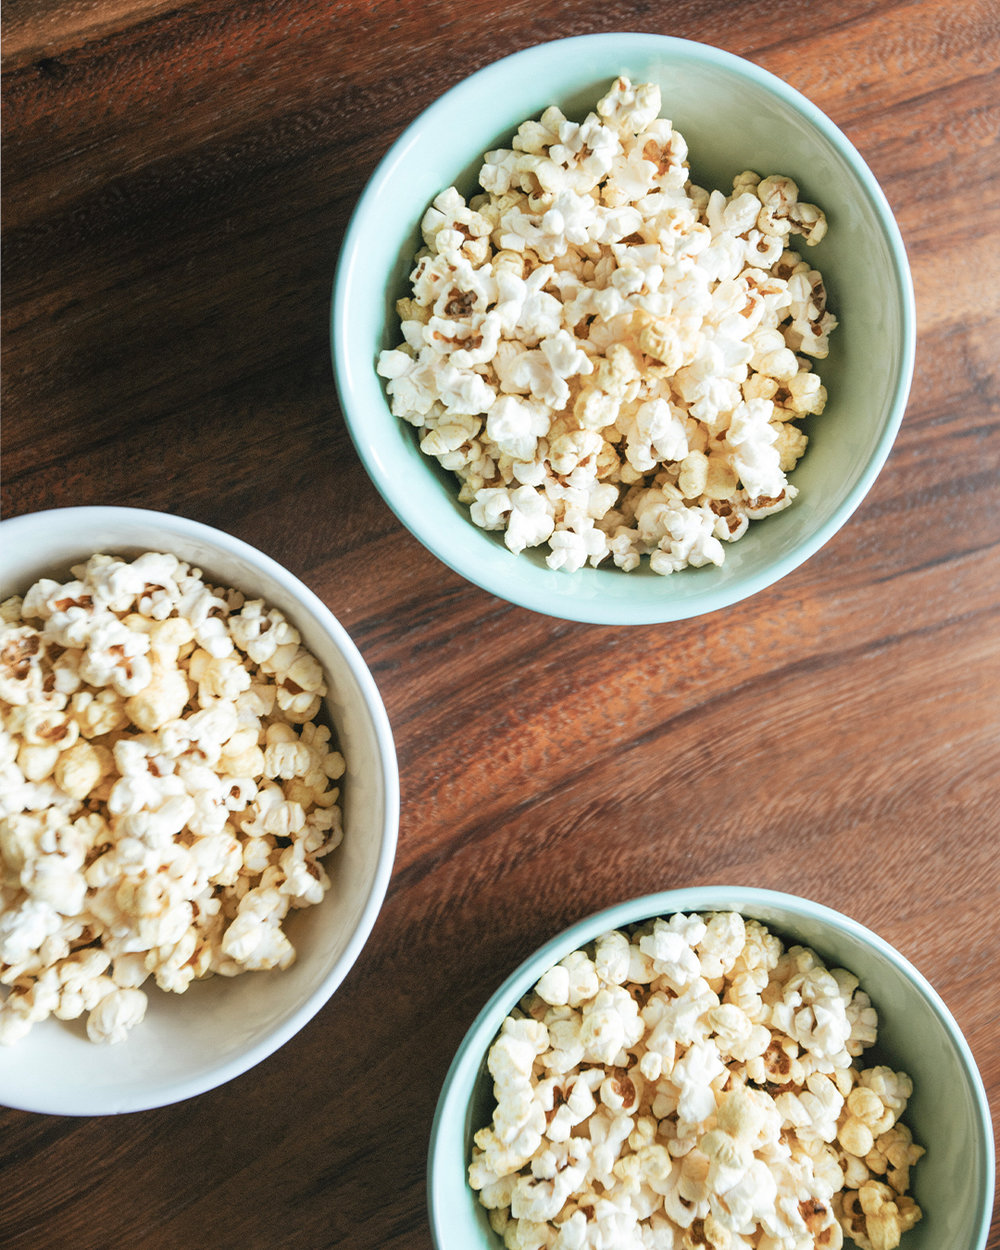 The-Oily-Home-Companion-Recipe-Vegan-Cheddar-Popcorn-Nutrional-Yeast-Rosemary-Snack-Essential-Oil-Vitality3.jpg